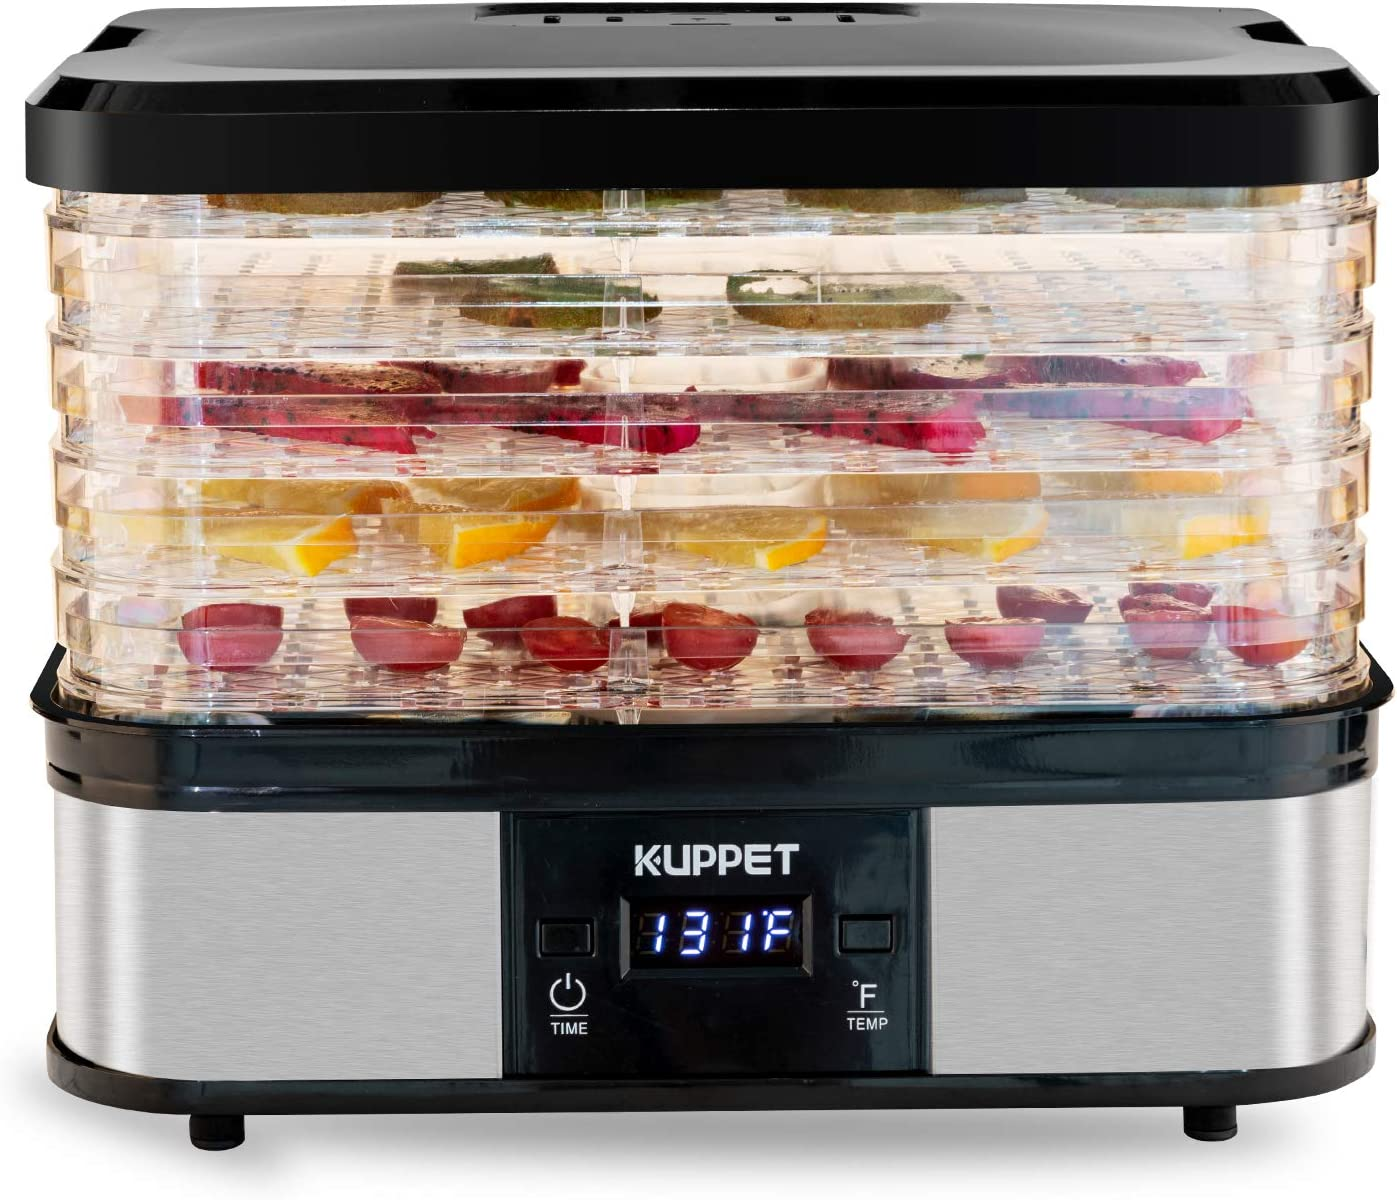 KUPPET Food Dehydrator Machine, Electric Food Drying Machine with Adjustable Thermostat, Meat or Beef Jerky Maker in Home/Kitchen, Digital Temperature & LCD Display, 5-Tray